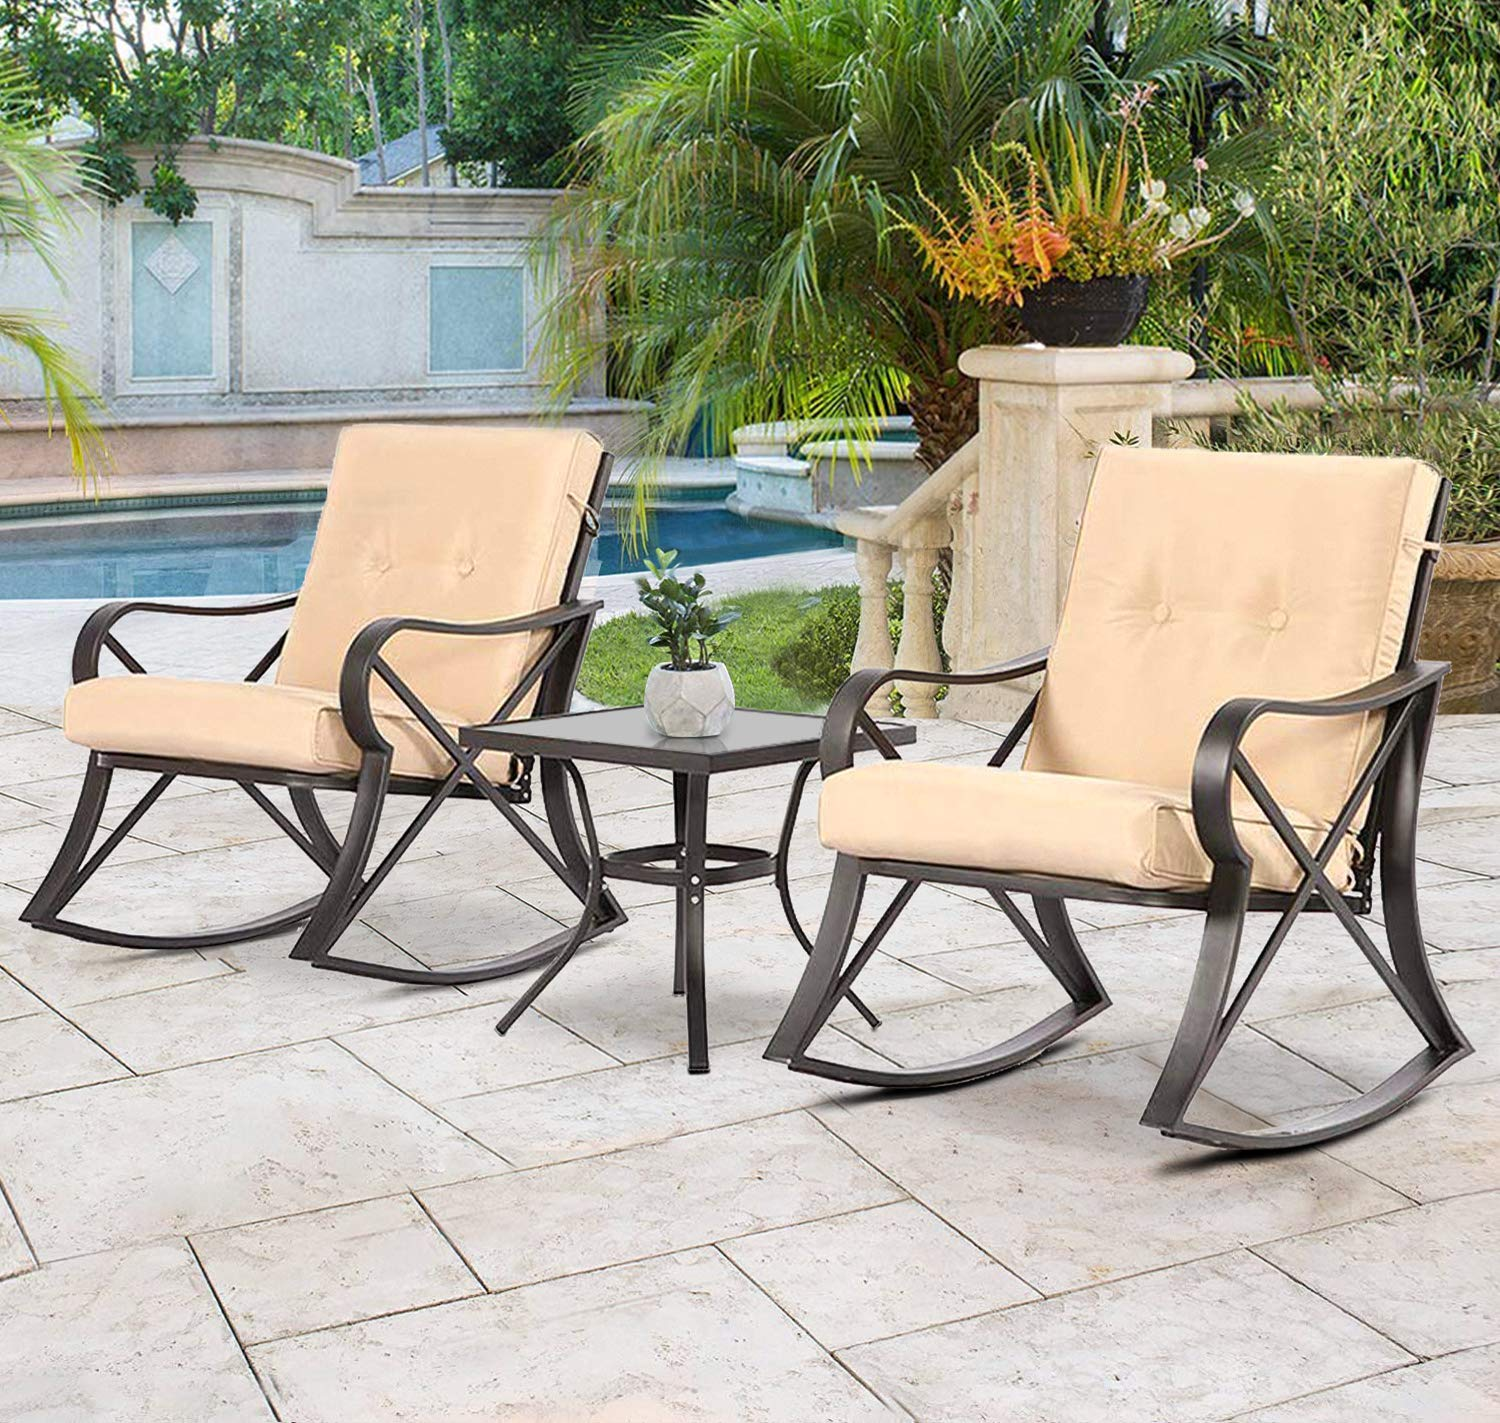 Solaura outdoor rocking chairs bistro set 3 piece black steel furniture with brown thickened cushion glass coffee table